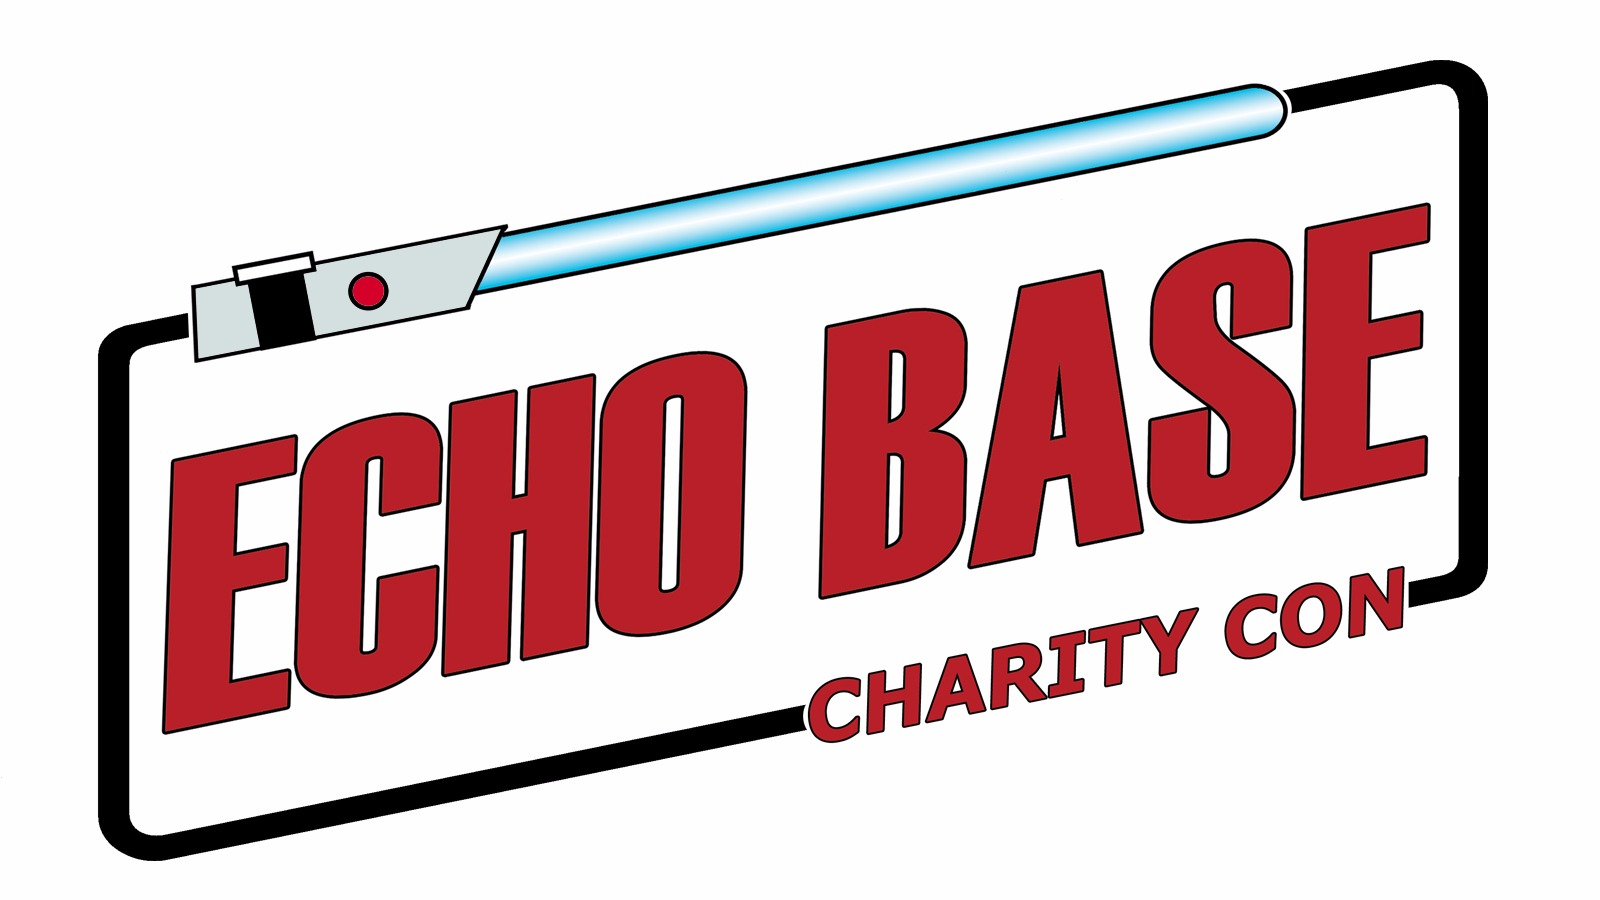 Echo Base Charity Con 2017